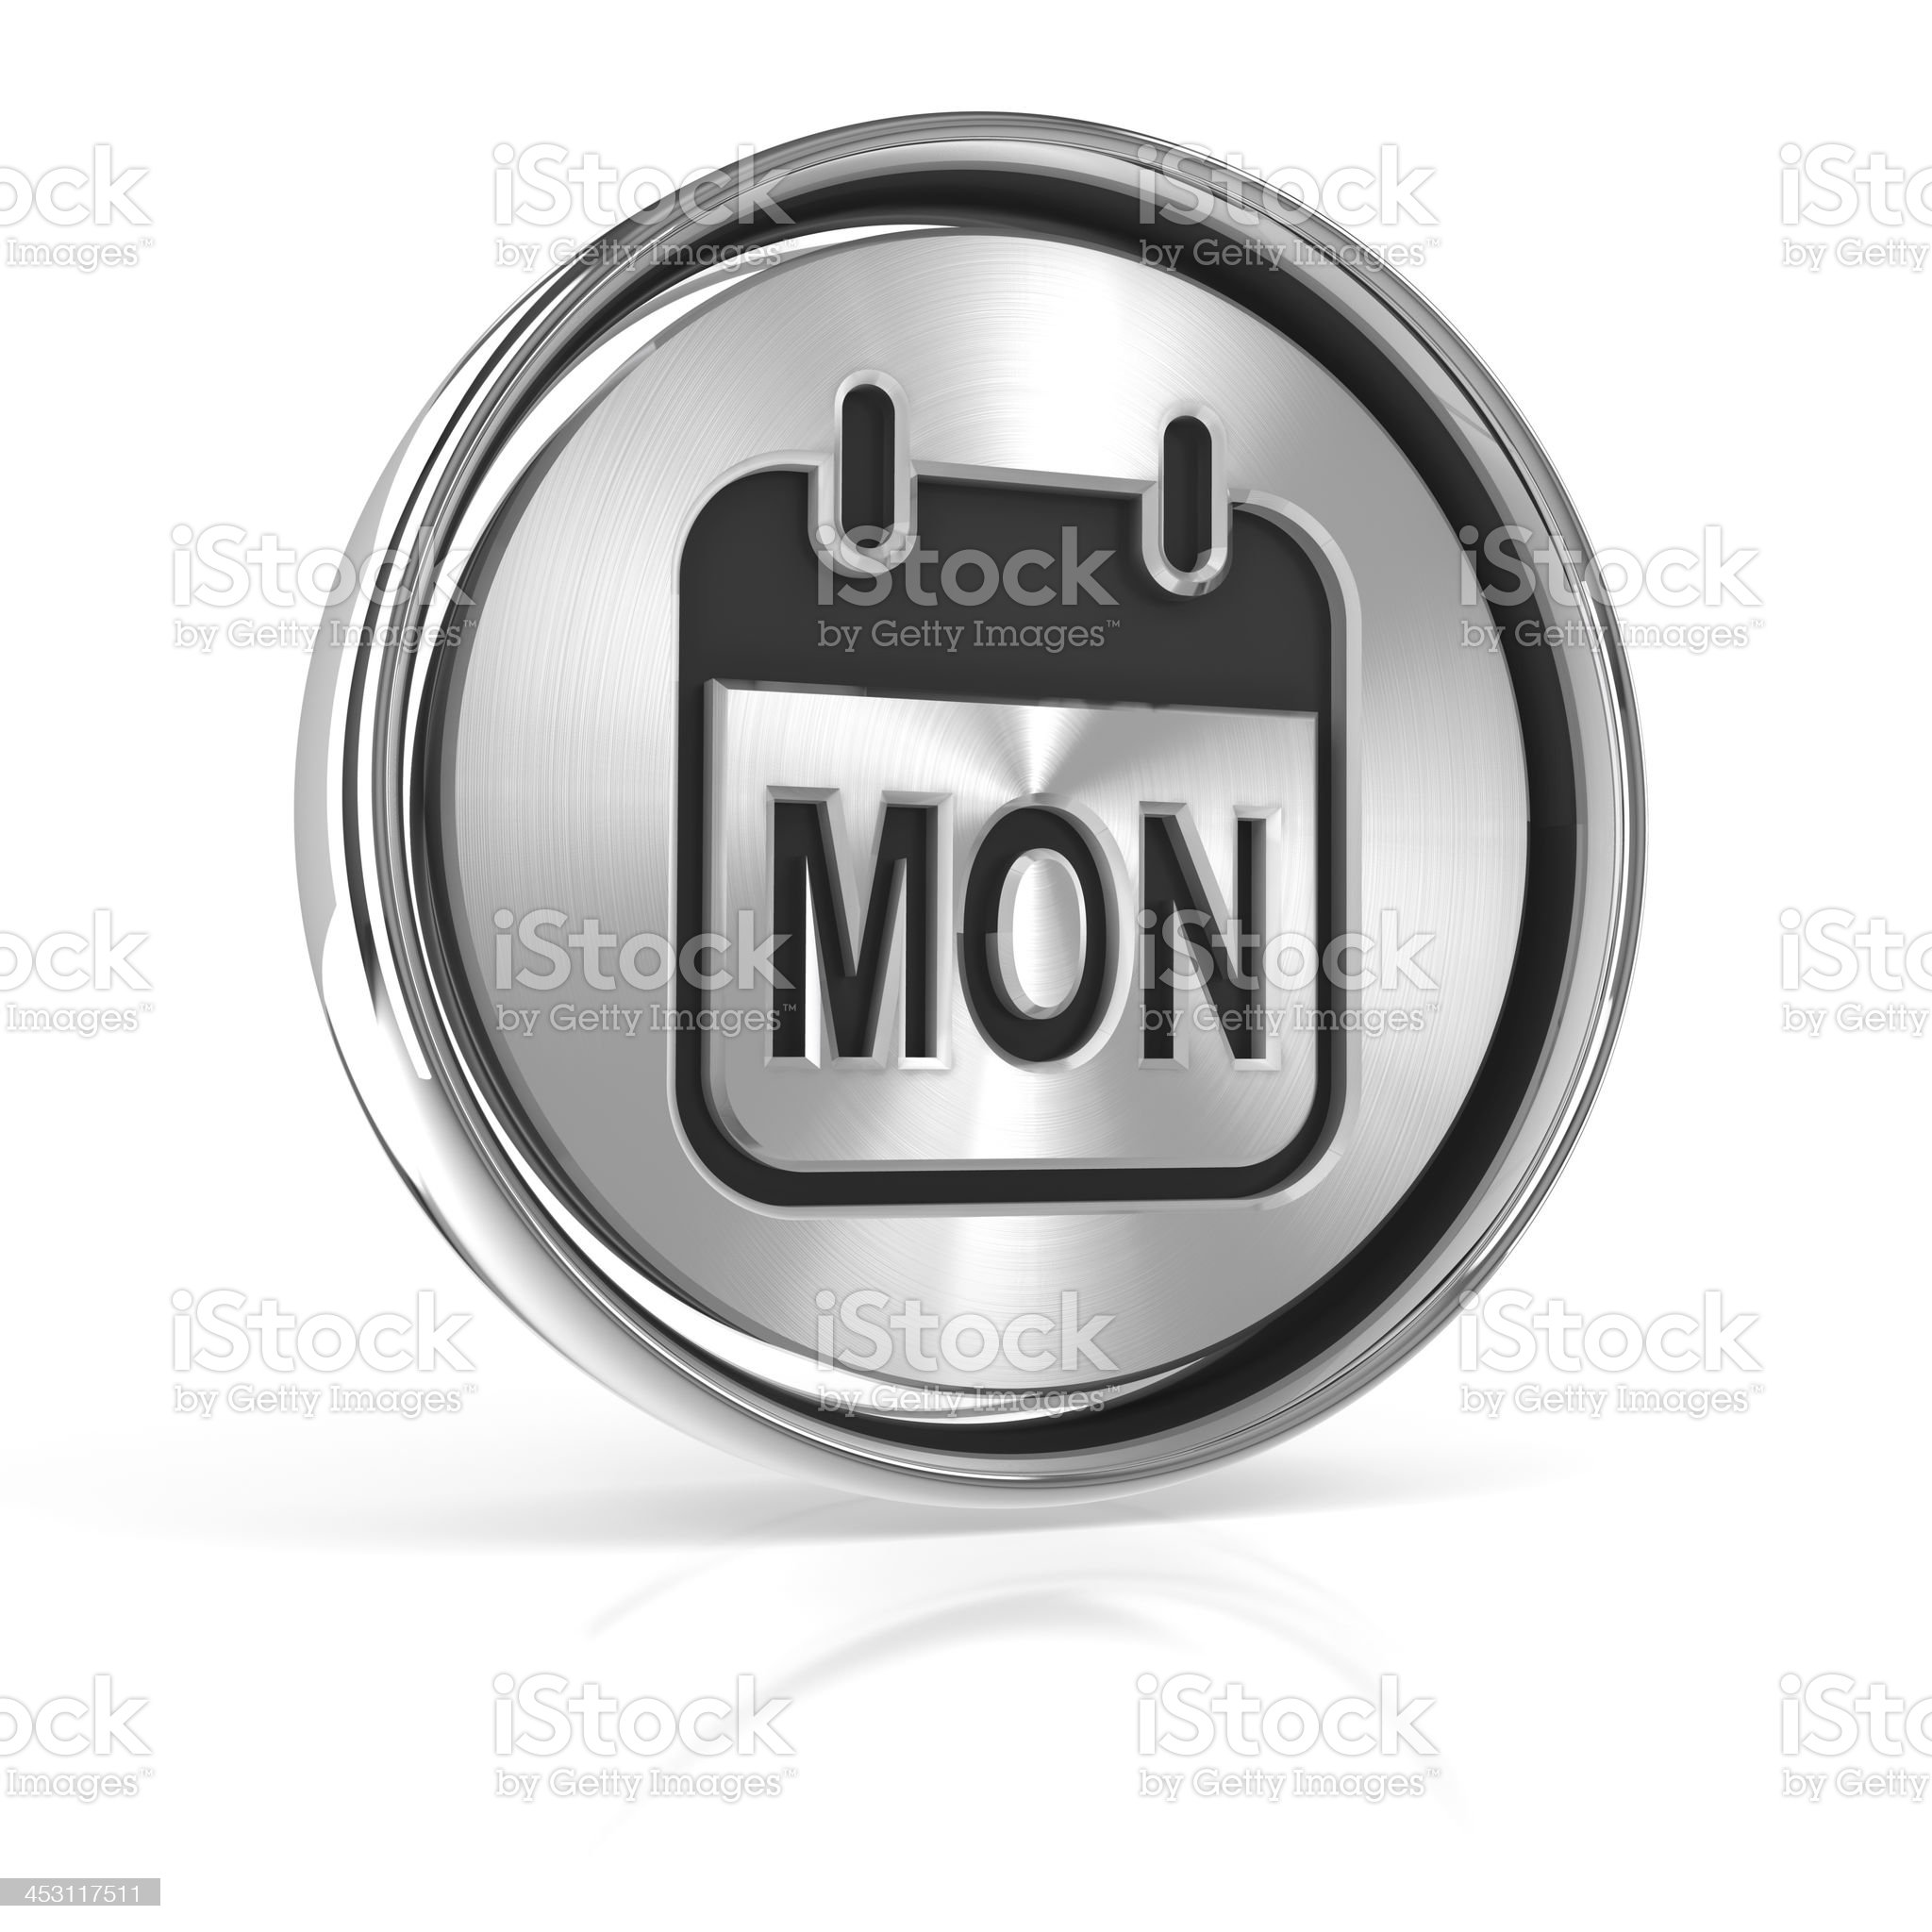 Metal calendar day of the week icon royalty-free stock photo